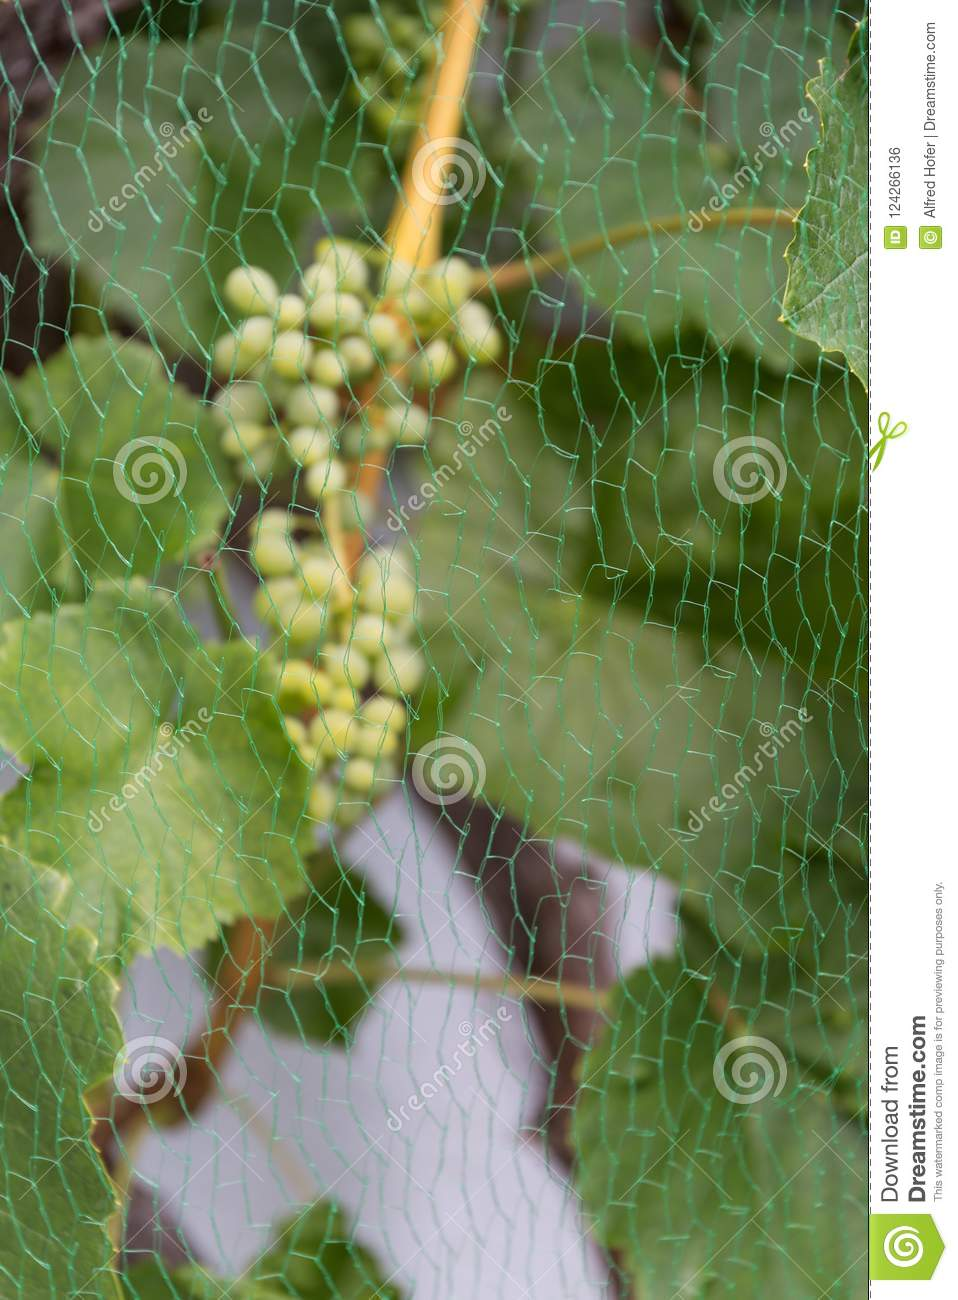 Bird Protection Net In Front Of Grapes - Close-up Stock